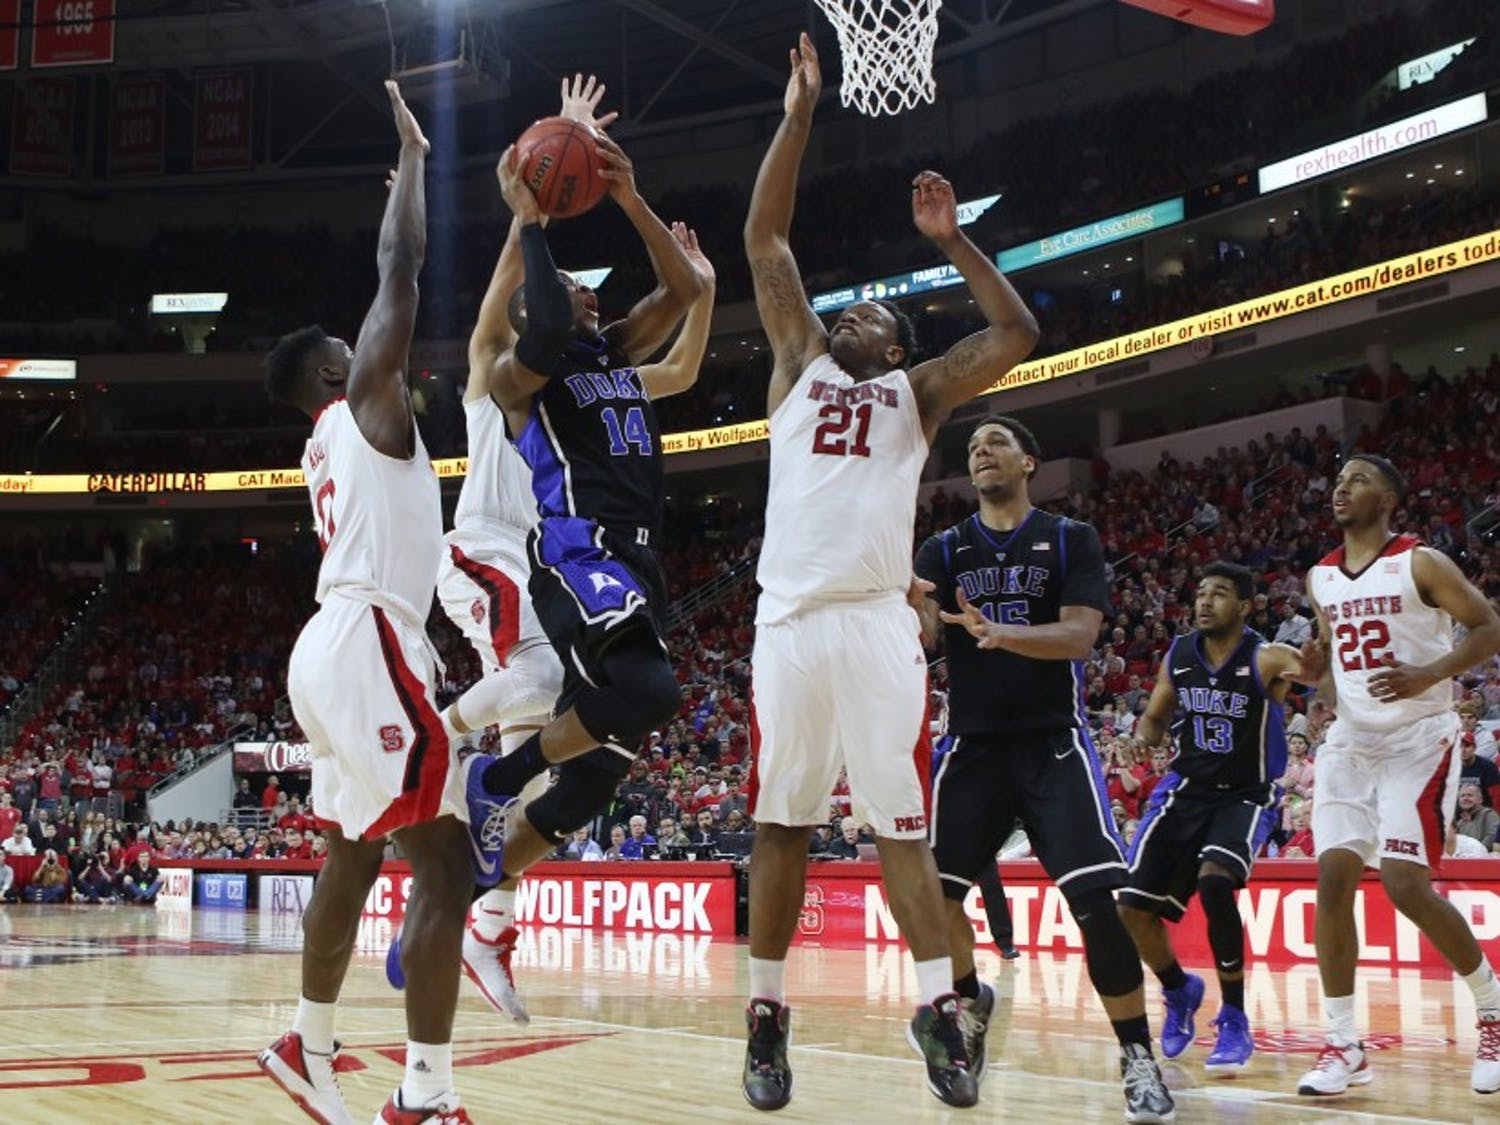 After getting 10 shots blocked Sunday in its first loss, Duke will look to be more patient when attacking Miami on the offensive end Tuesday night.